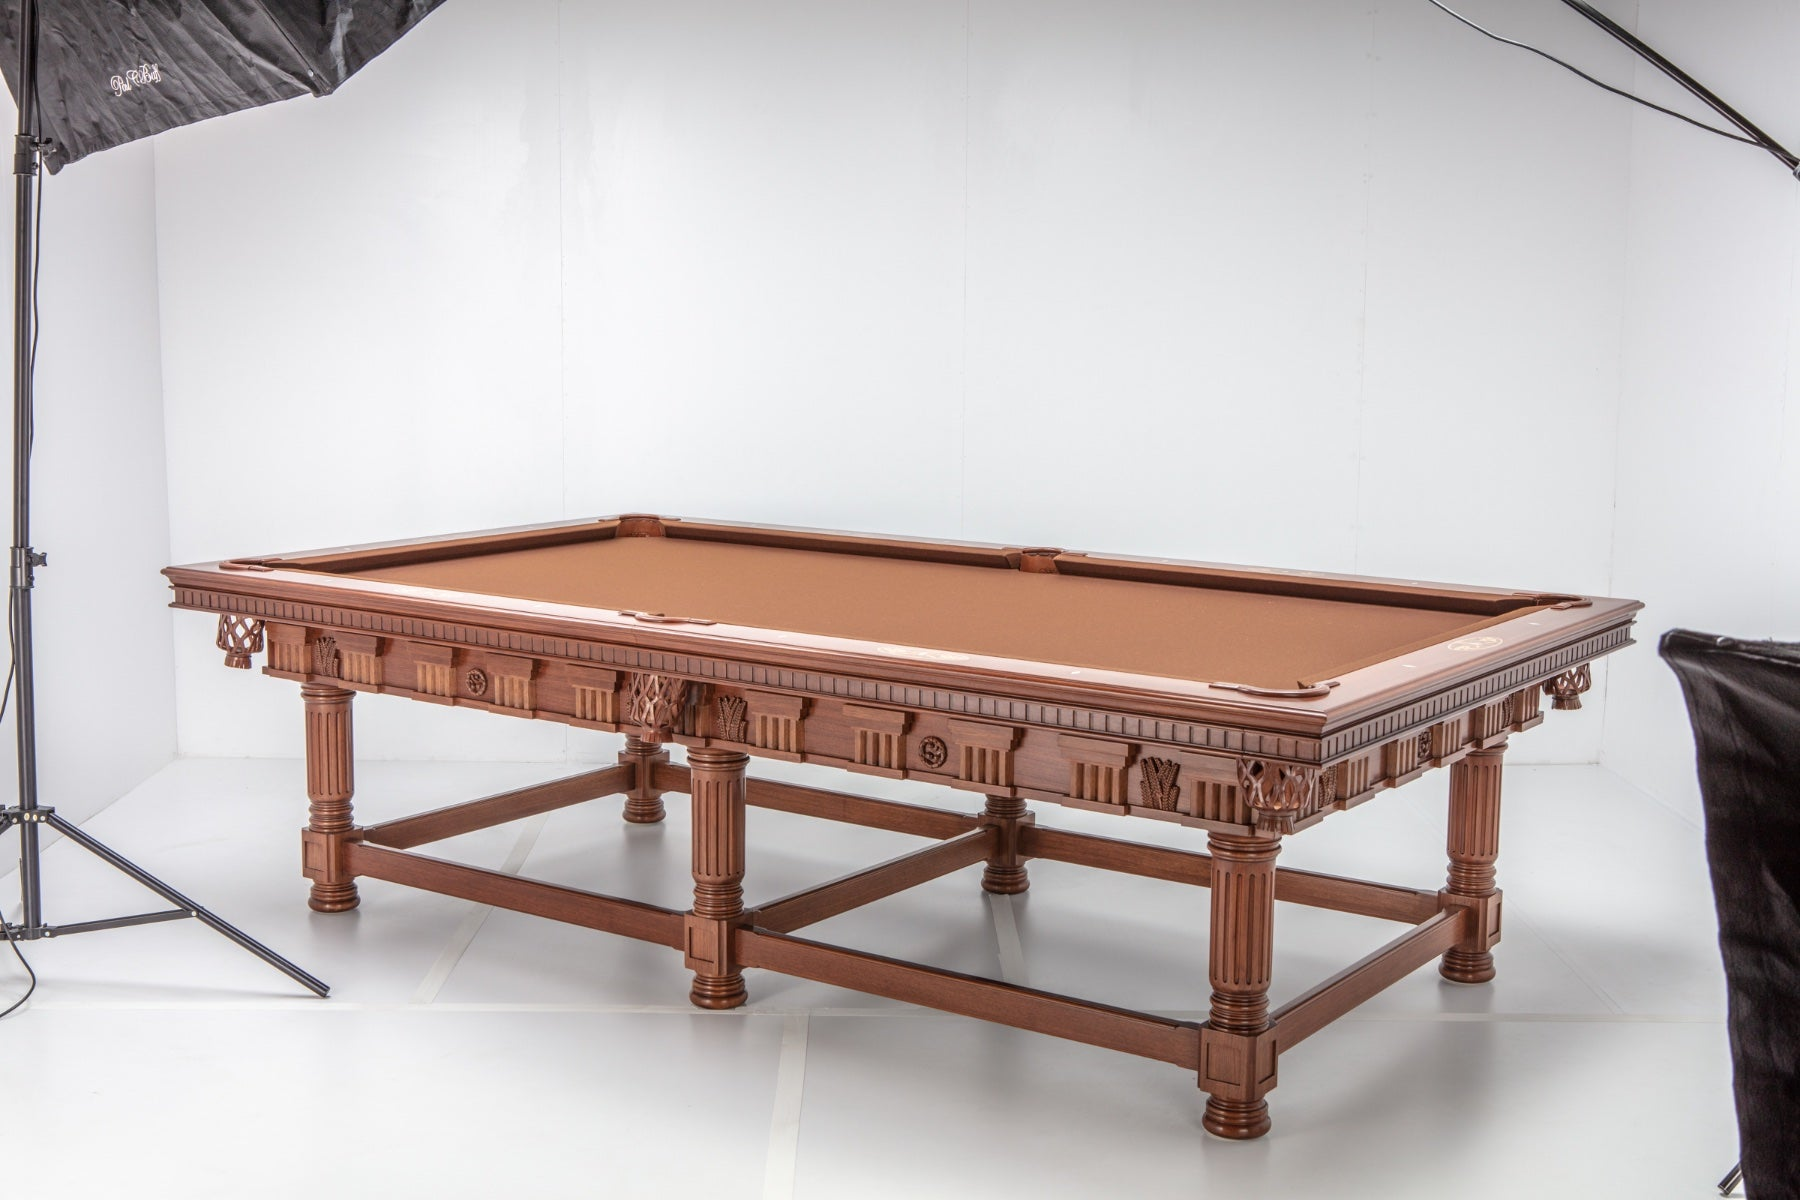 Meadow - Blatt Billiards